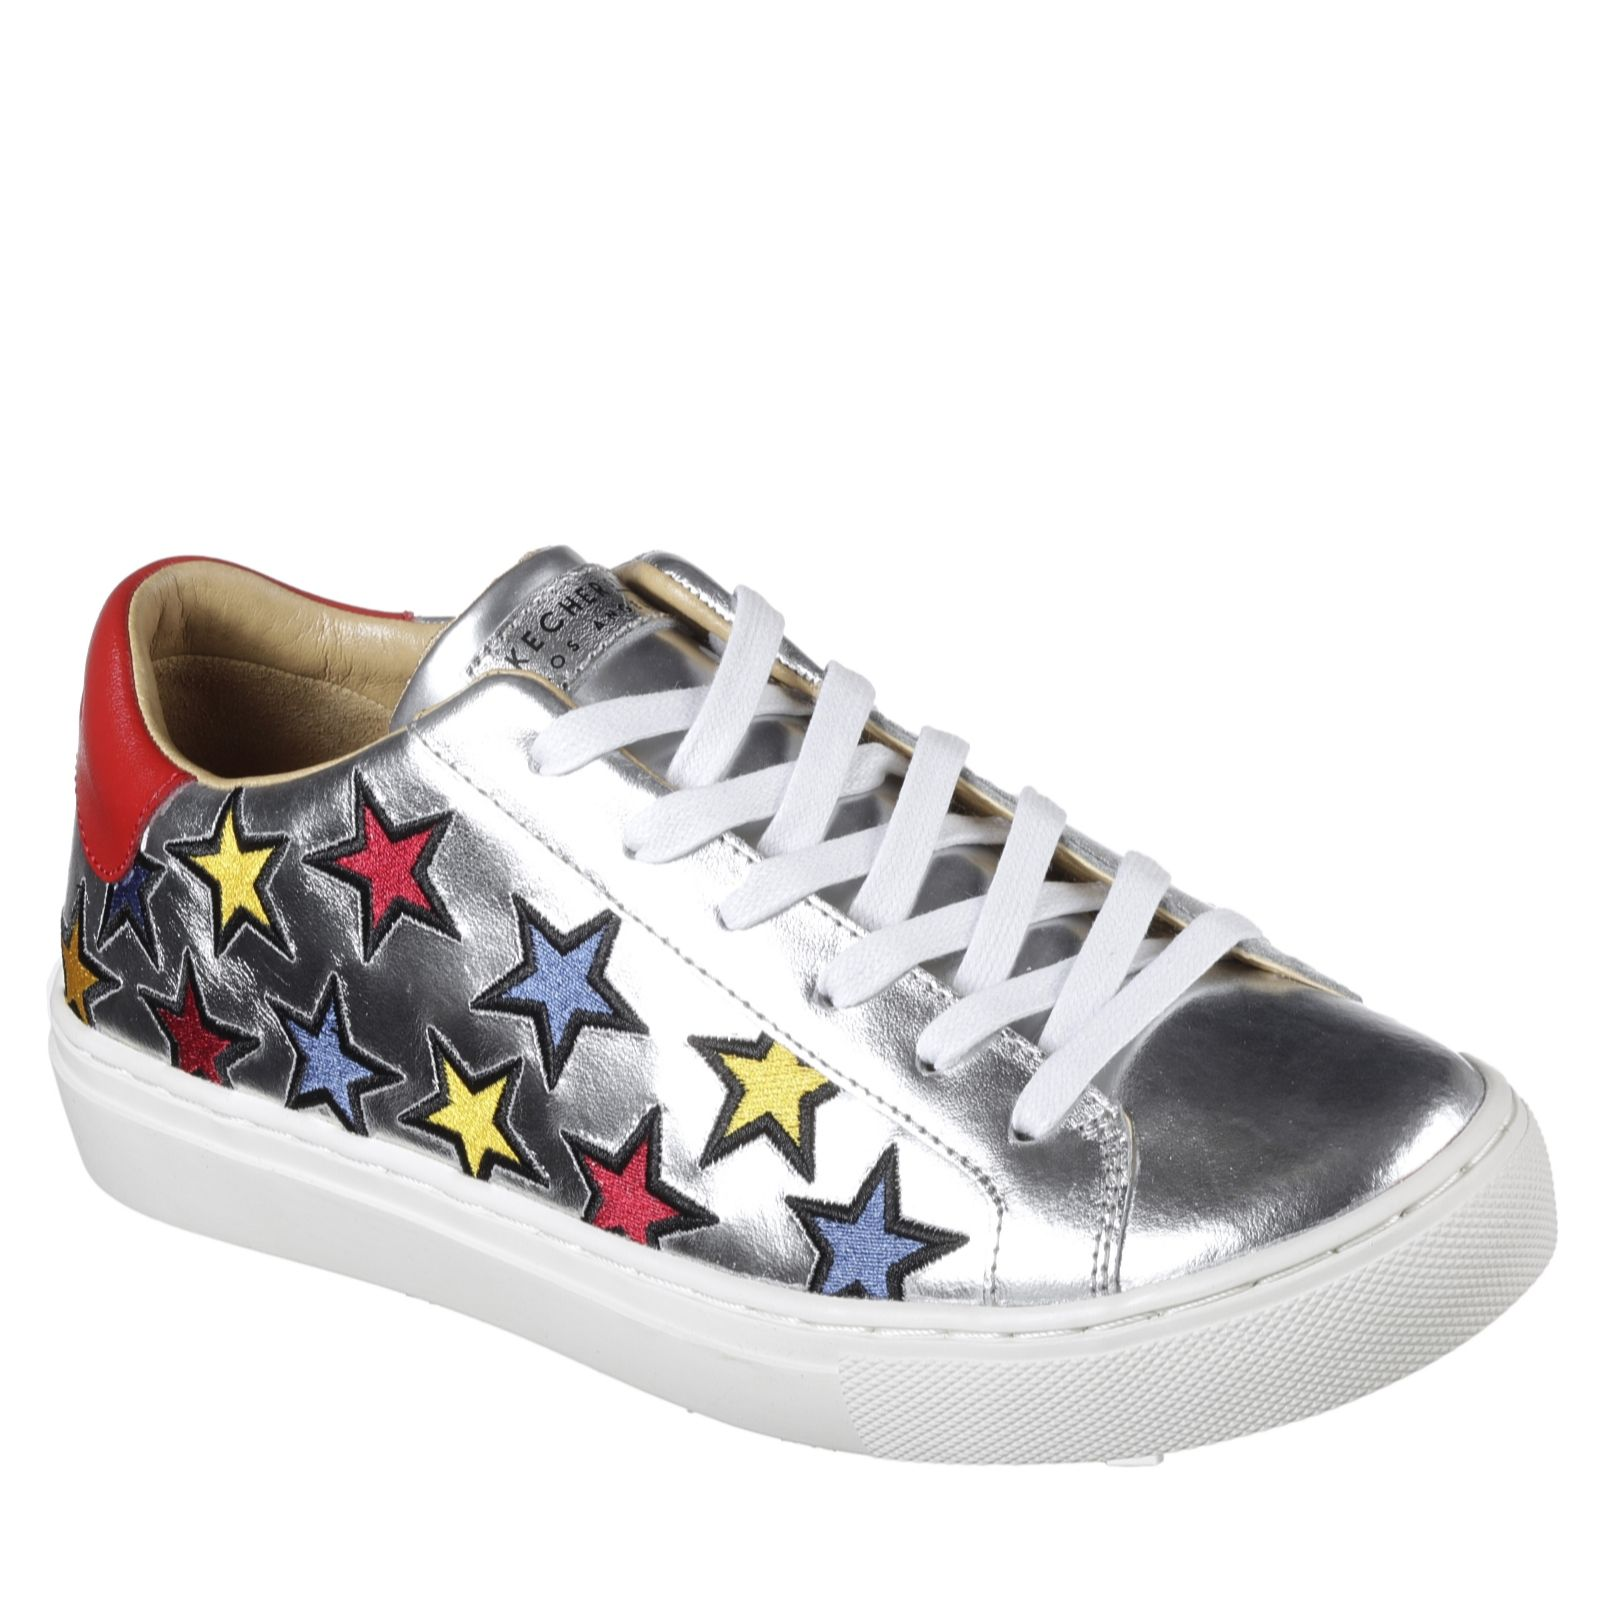 b8f58fe9955 Skechers Street Star Side Embroidery Leather Lace Up Trainer - QVC ...